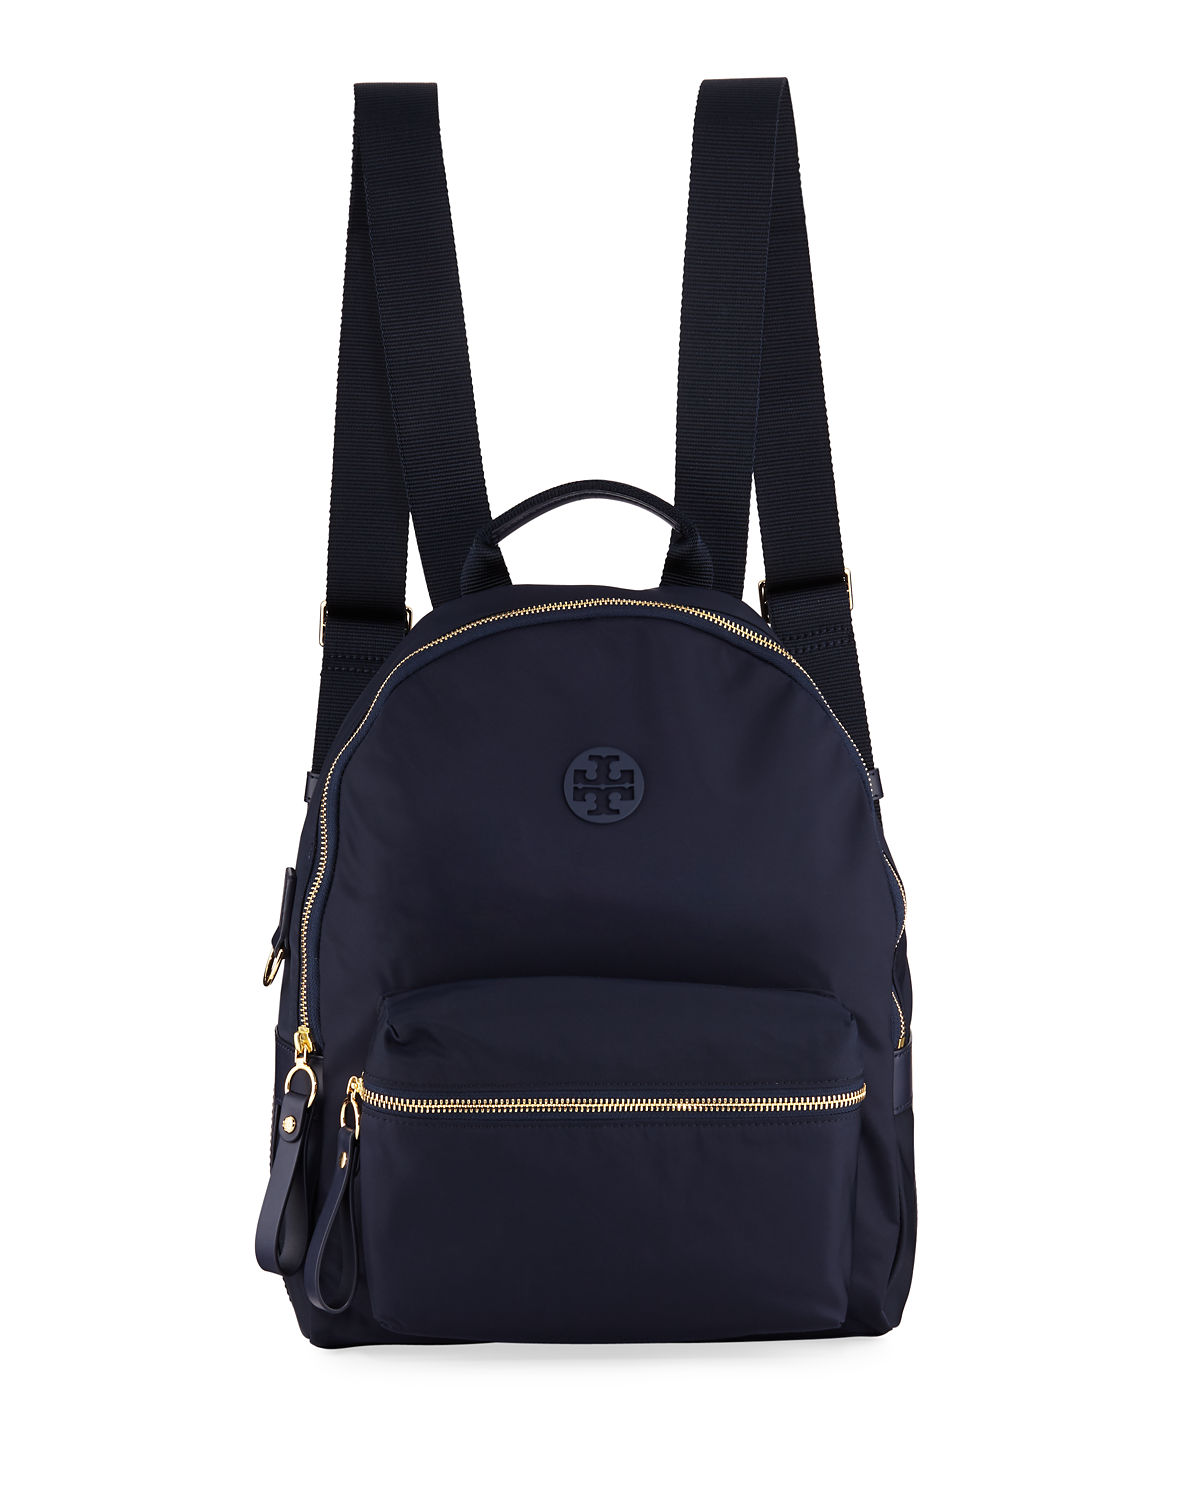 50aad98a98c0 Tory Burch Tilda Nylon Zip Backpack